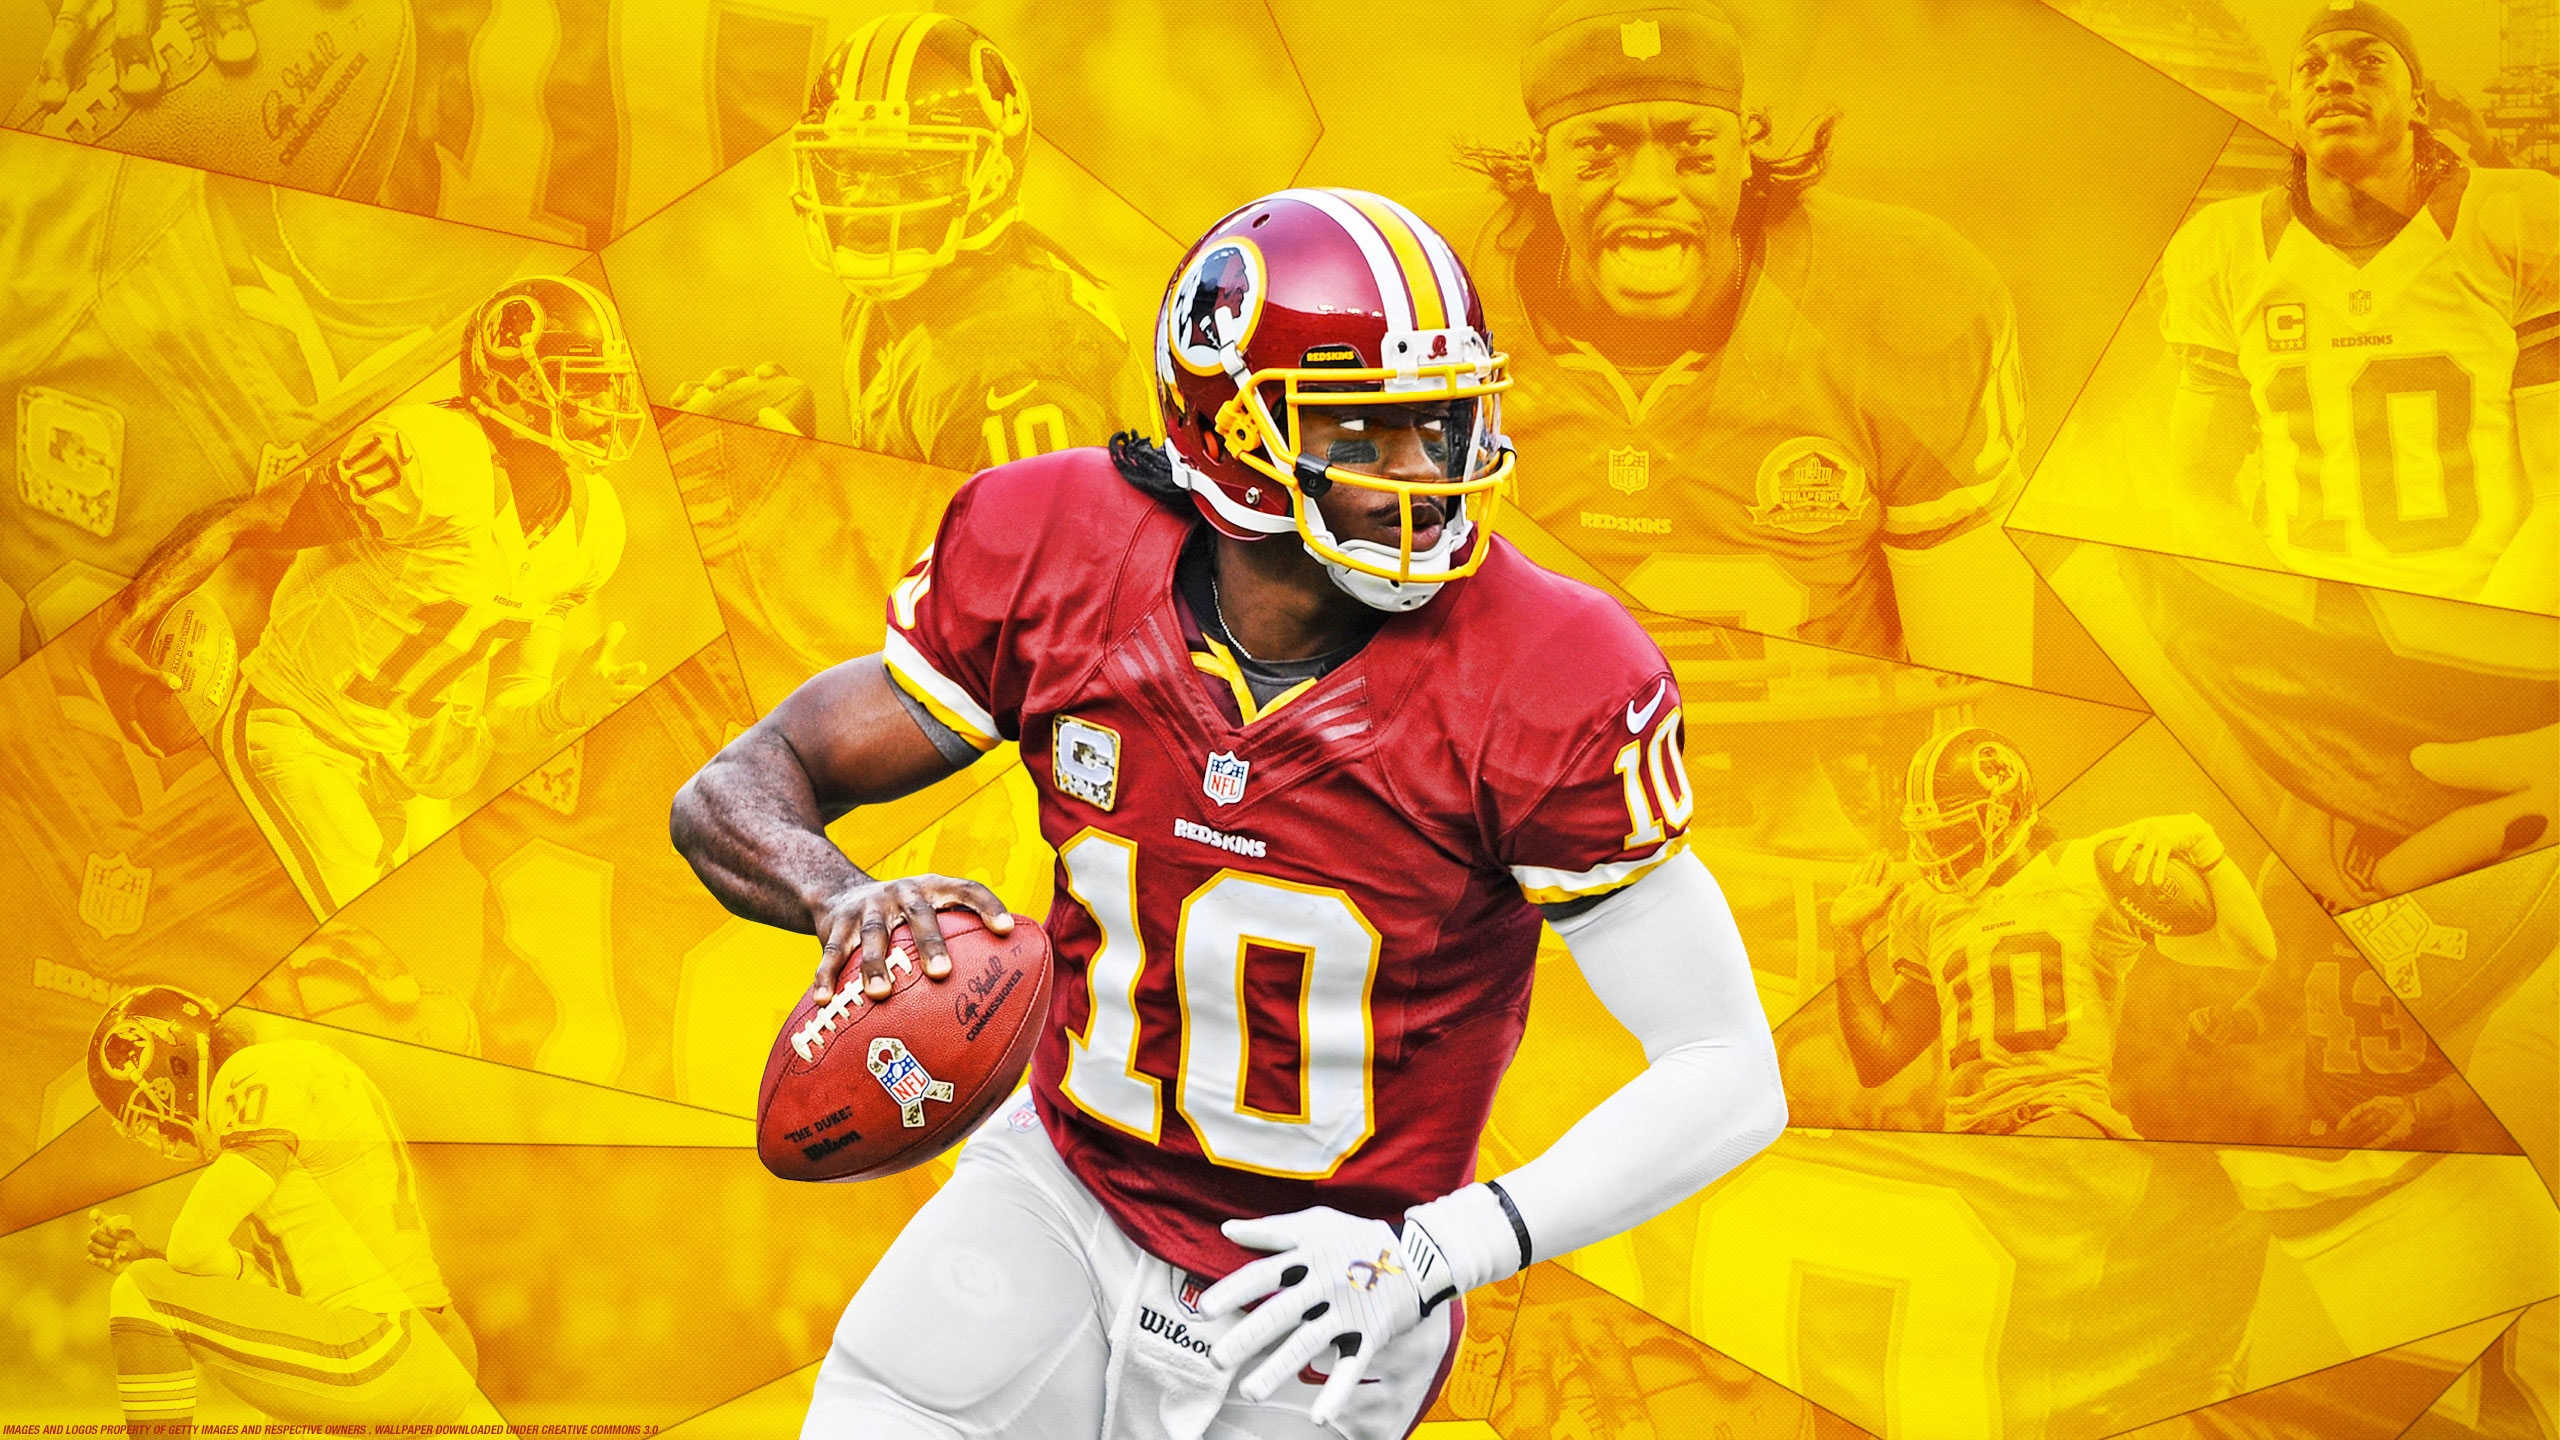 Redskins Robert Griffin III Wallpaper in High Resolution at Sports 2560x1440